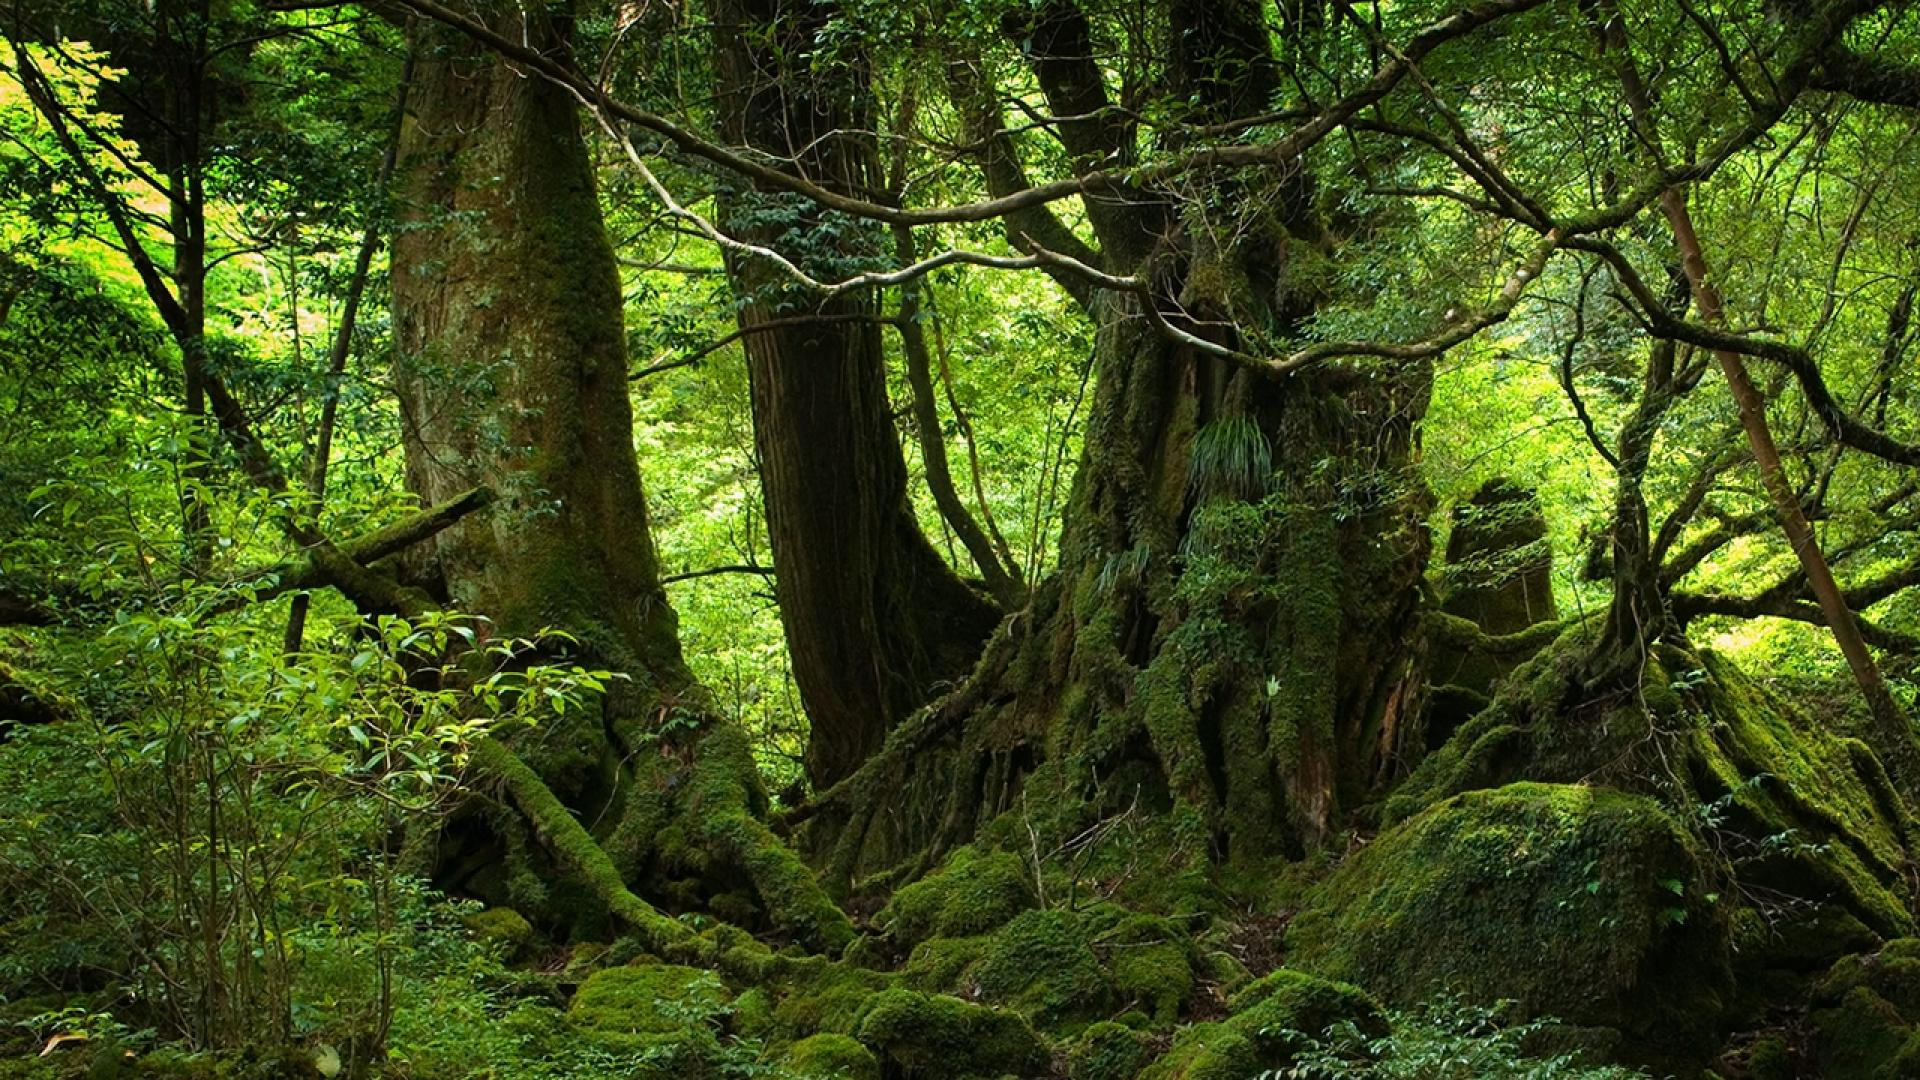 Nature Trees Forest Woods Magic Wallpaper 1920×1080 1080P WideScreen | Wide Screen Wallpaper ...